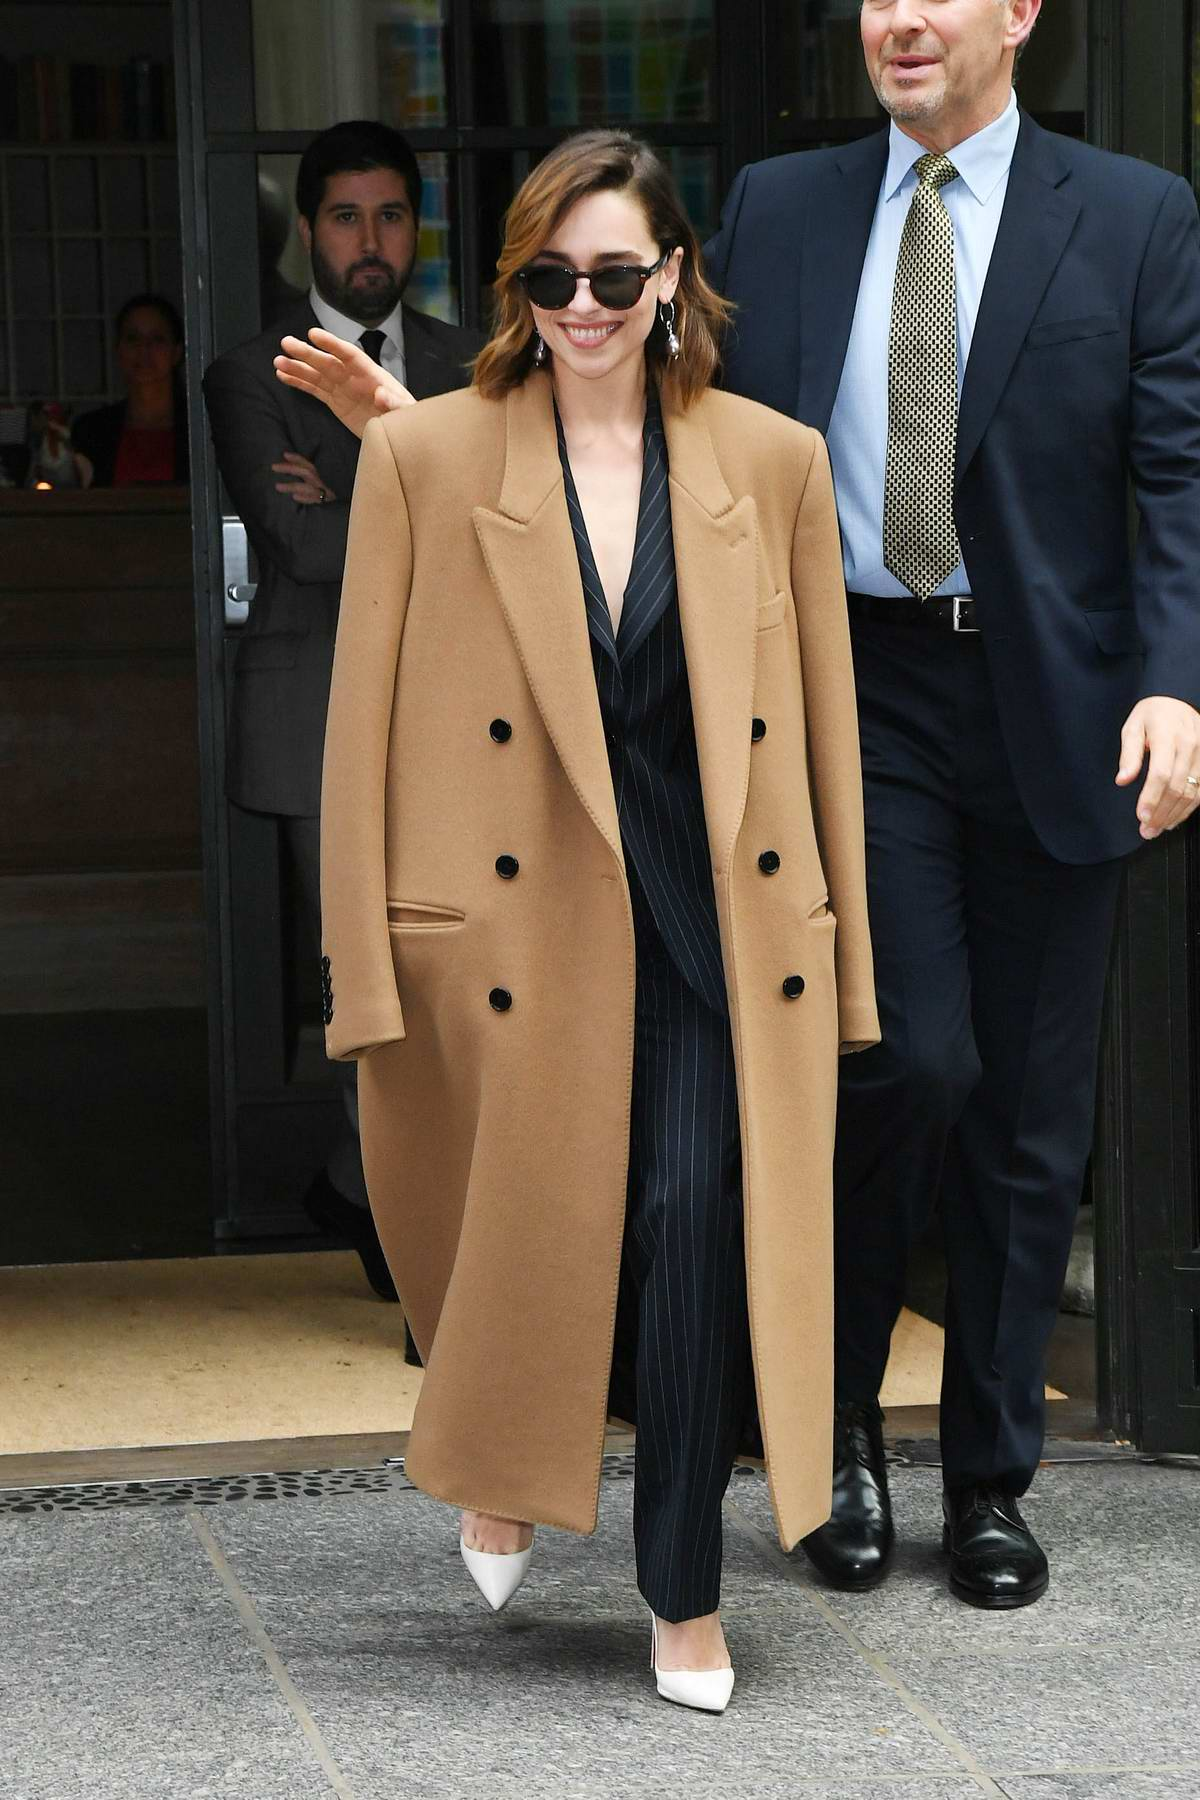 Emilia Clarke seen wearing a pinstriped suit and brown trench coat while out promoting 'Last Christmas' in New York City